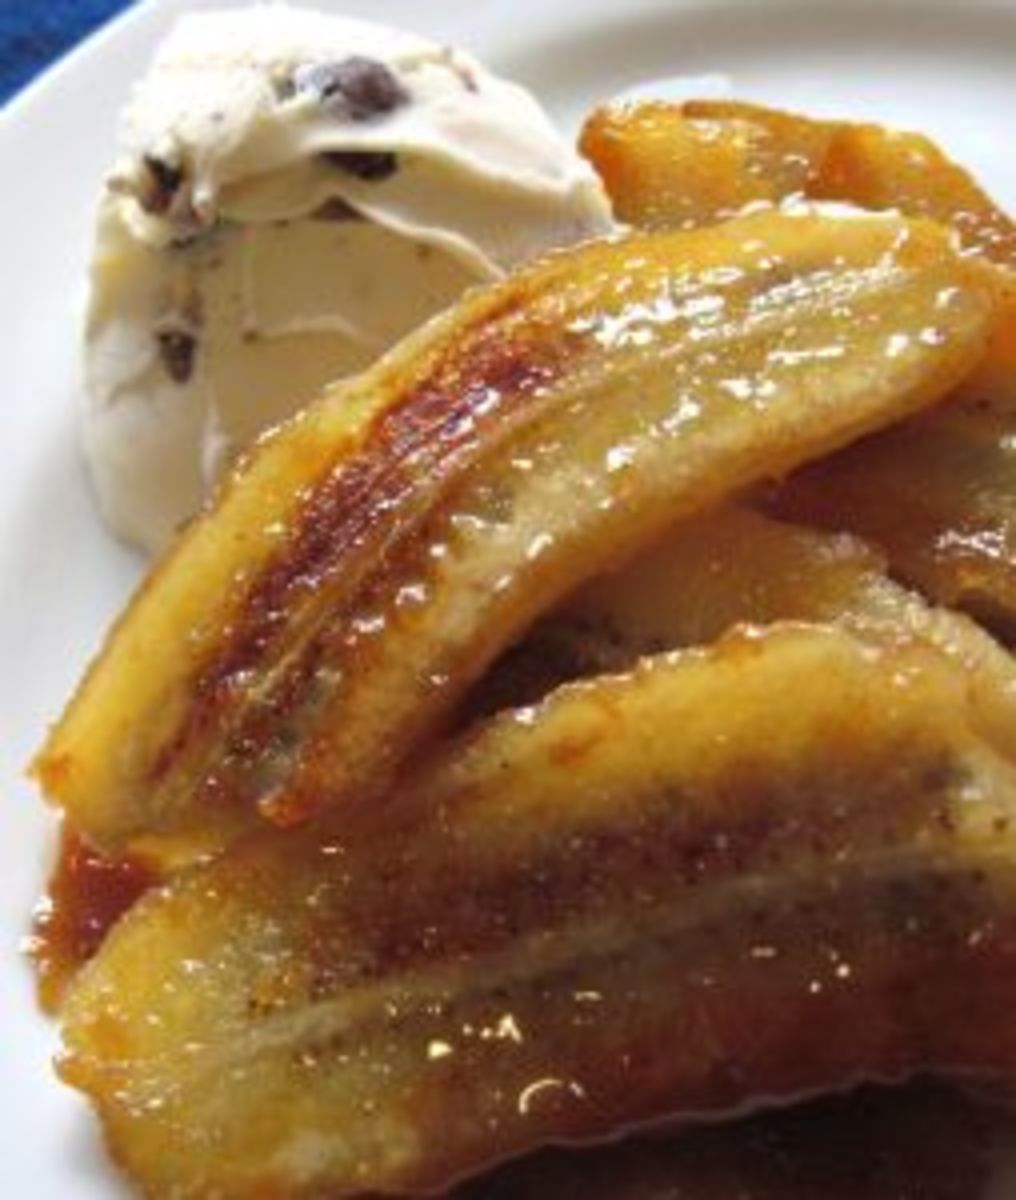 Fried Bananas Dessert Recipe